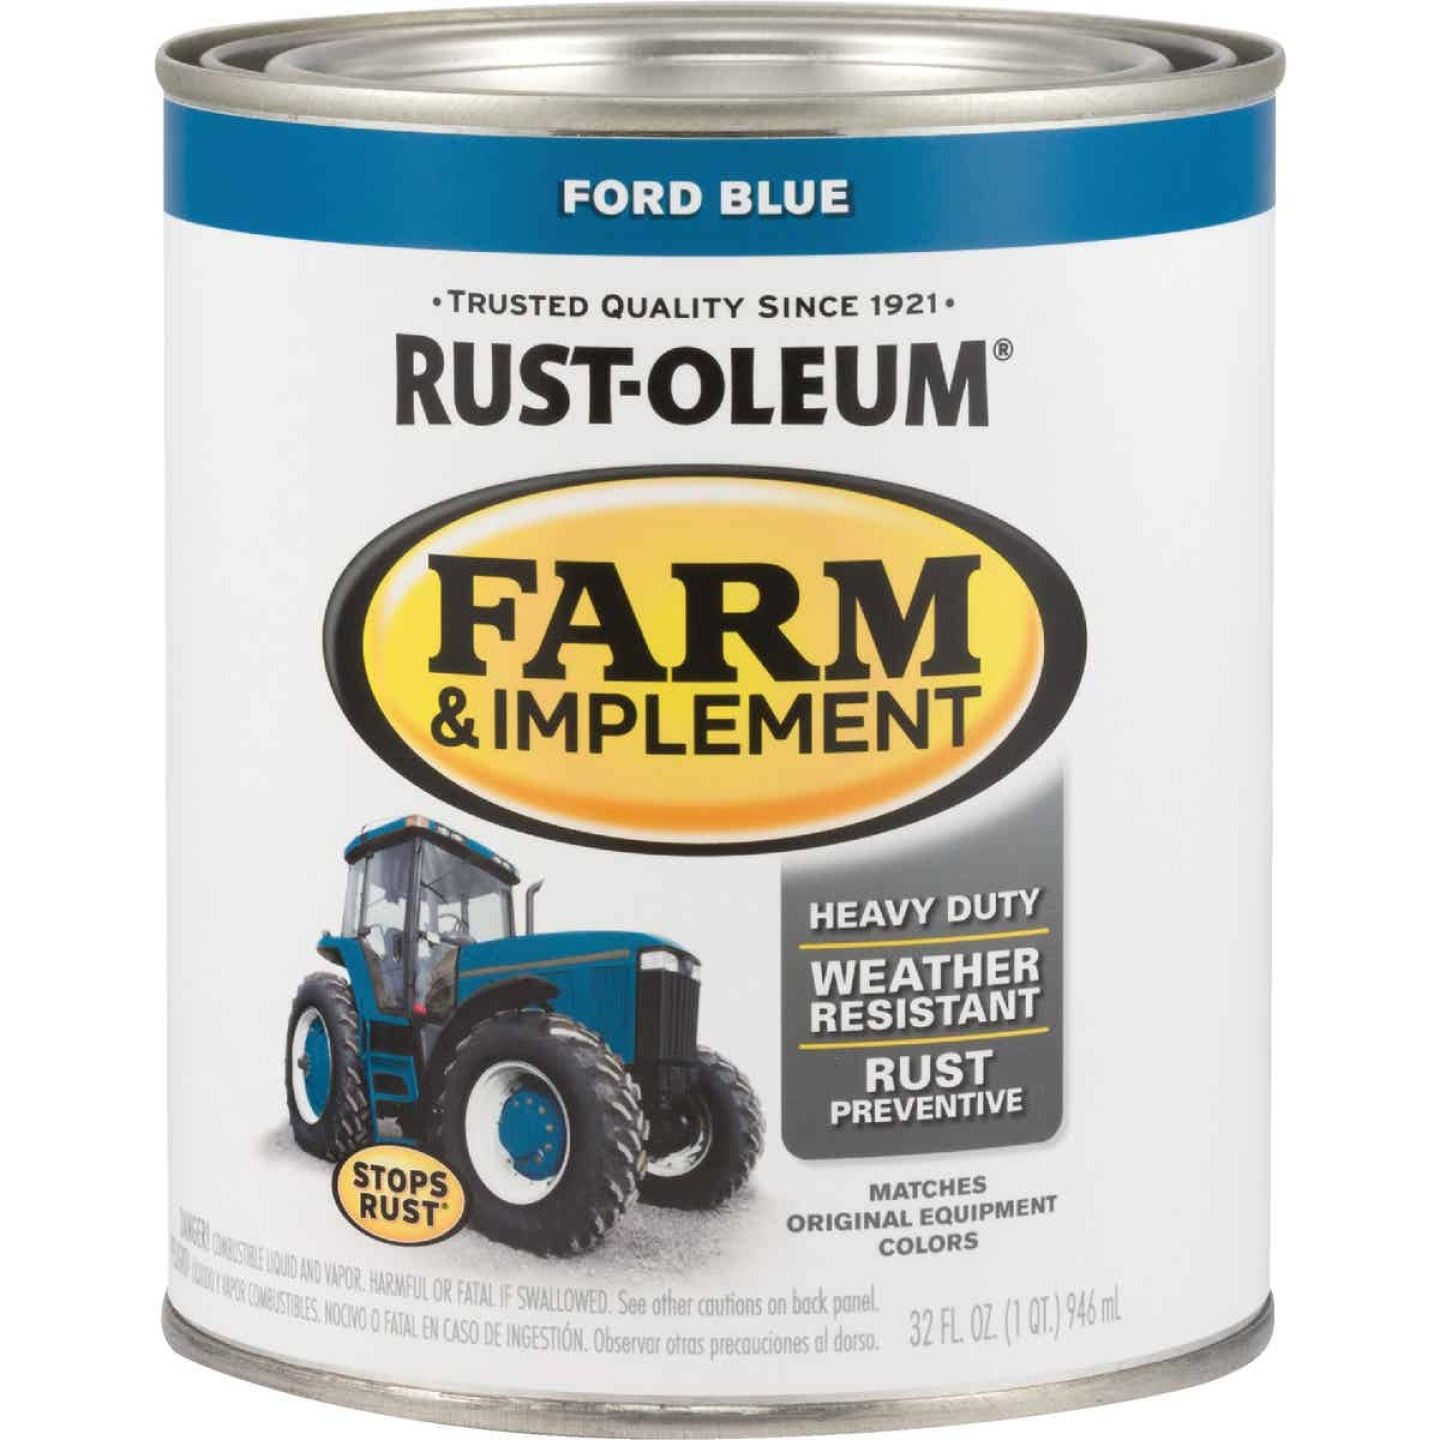 Rust-Oleum 1 Quart Ford Blue Gloss Farm & Implement Enamel Image 1